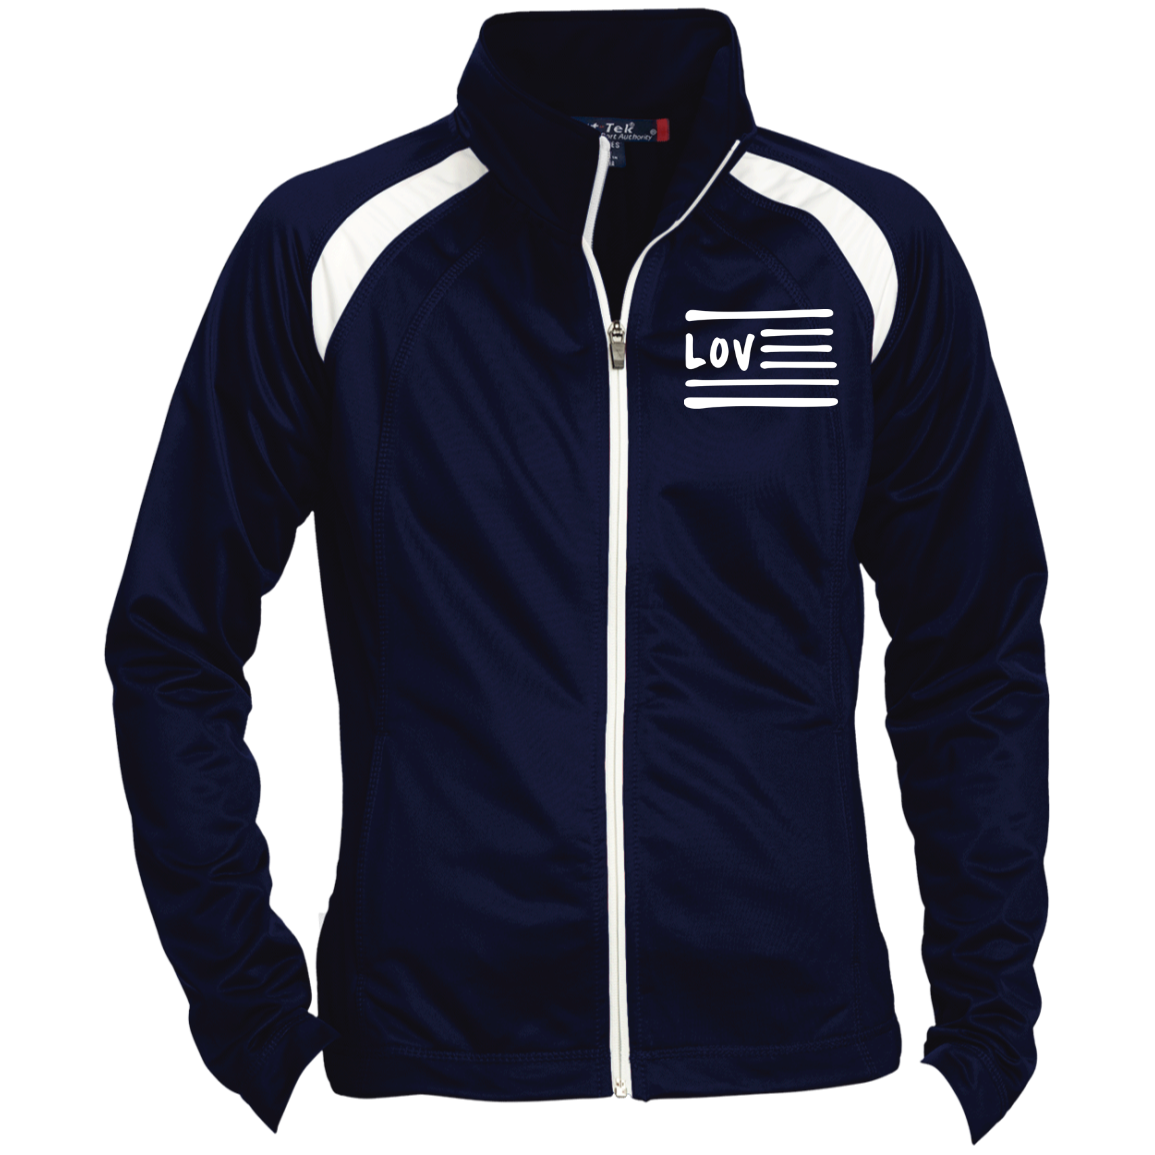 Love Nation Sport-Tek Ladies' Raglan Sleeve Warmup Jacket - Vinyl Clothing Co - DJ Apparel Clothing Disc Jockey Vinyl Gear